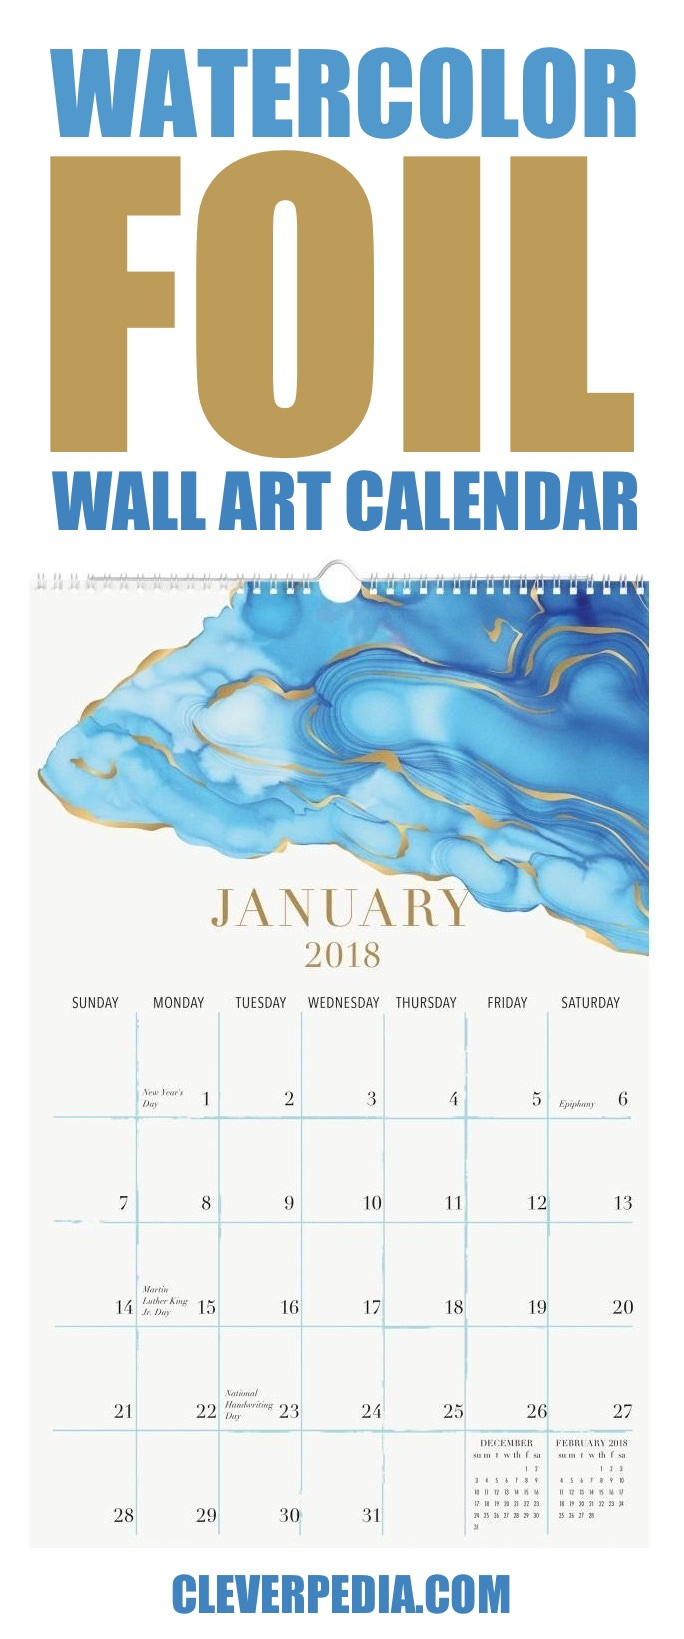 Don't you love this colorful watercolor calendar with gold foil accents? With plenty of space to write your appointments, this wall art calendar is a great balance of beauty and practicality.